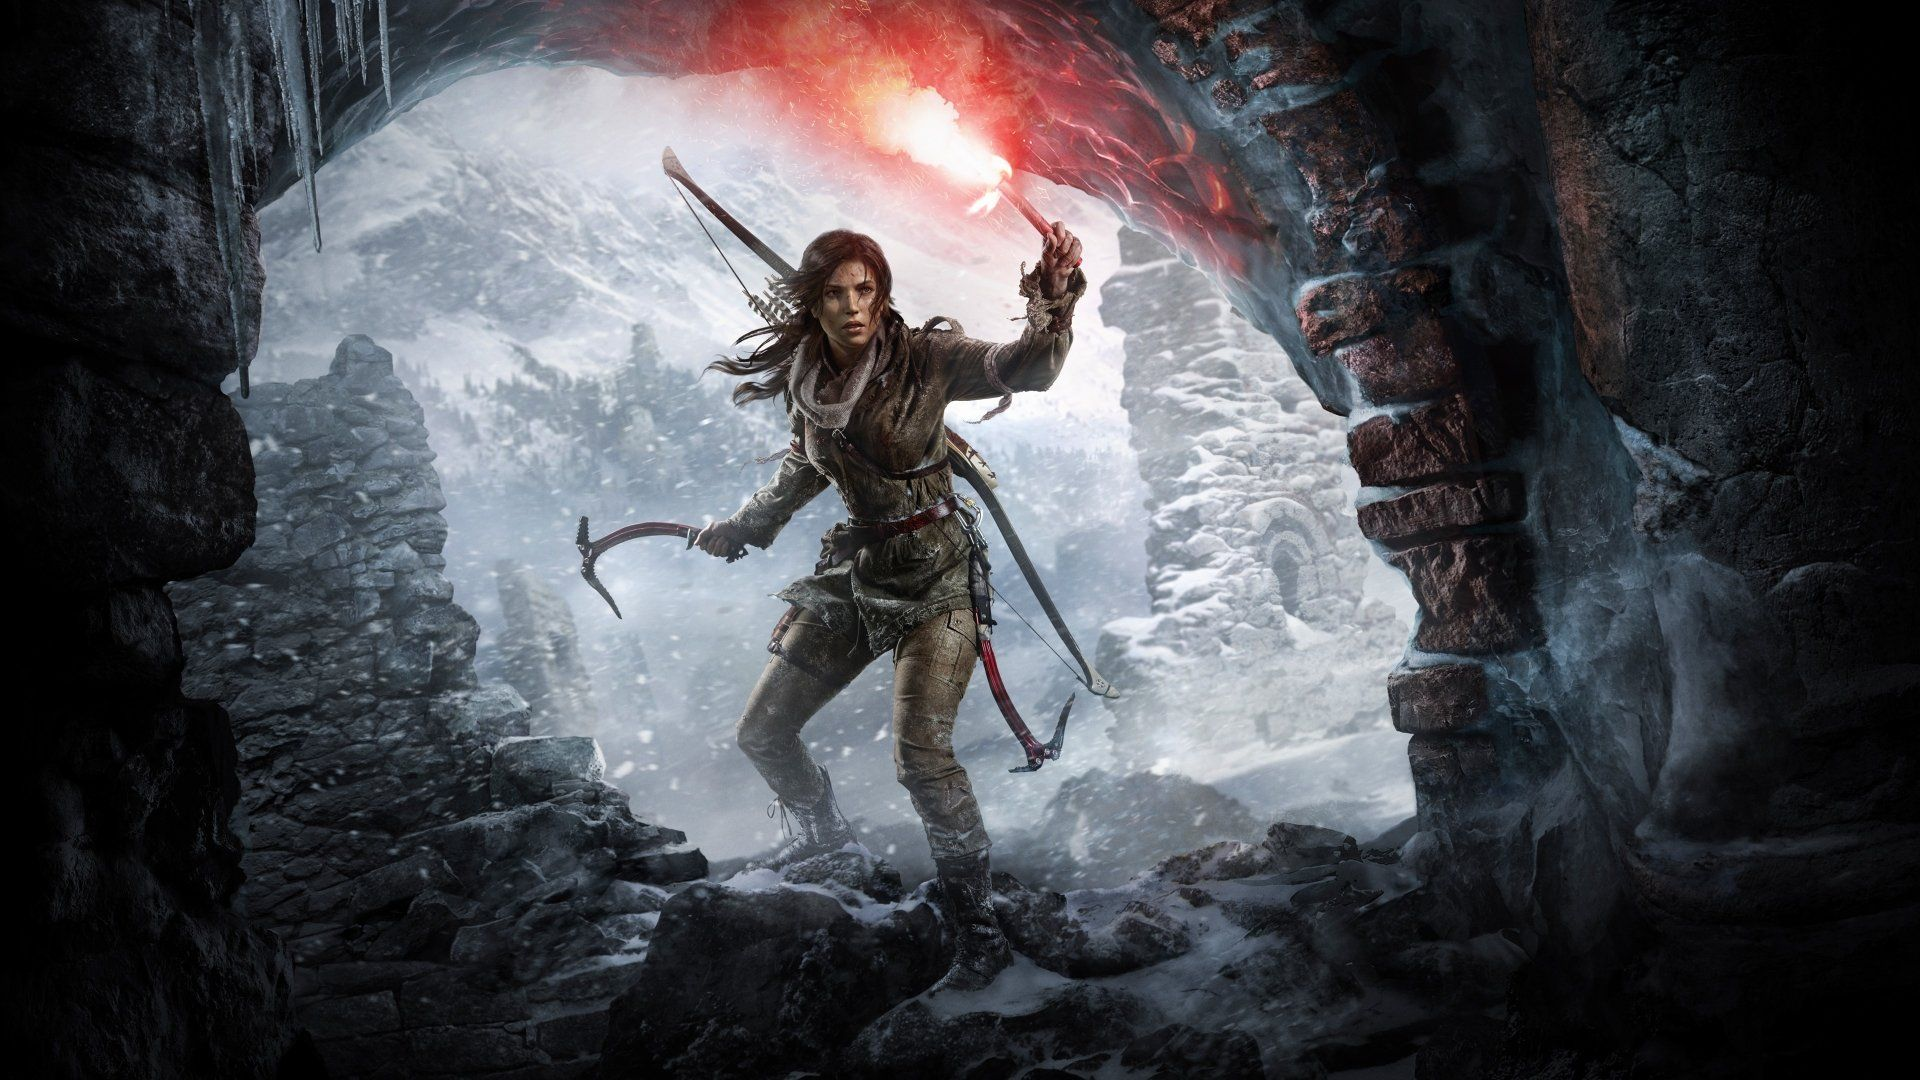 Rise Of The Tomb Raider Hd Wallpaper - Rise Of Tomb Raider , HD Wallpaper & Backgrounds